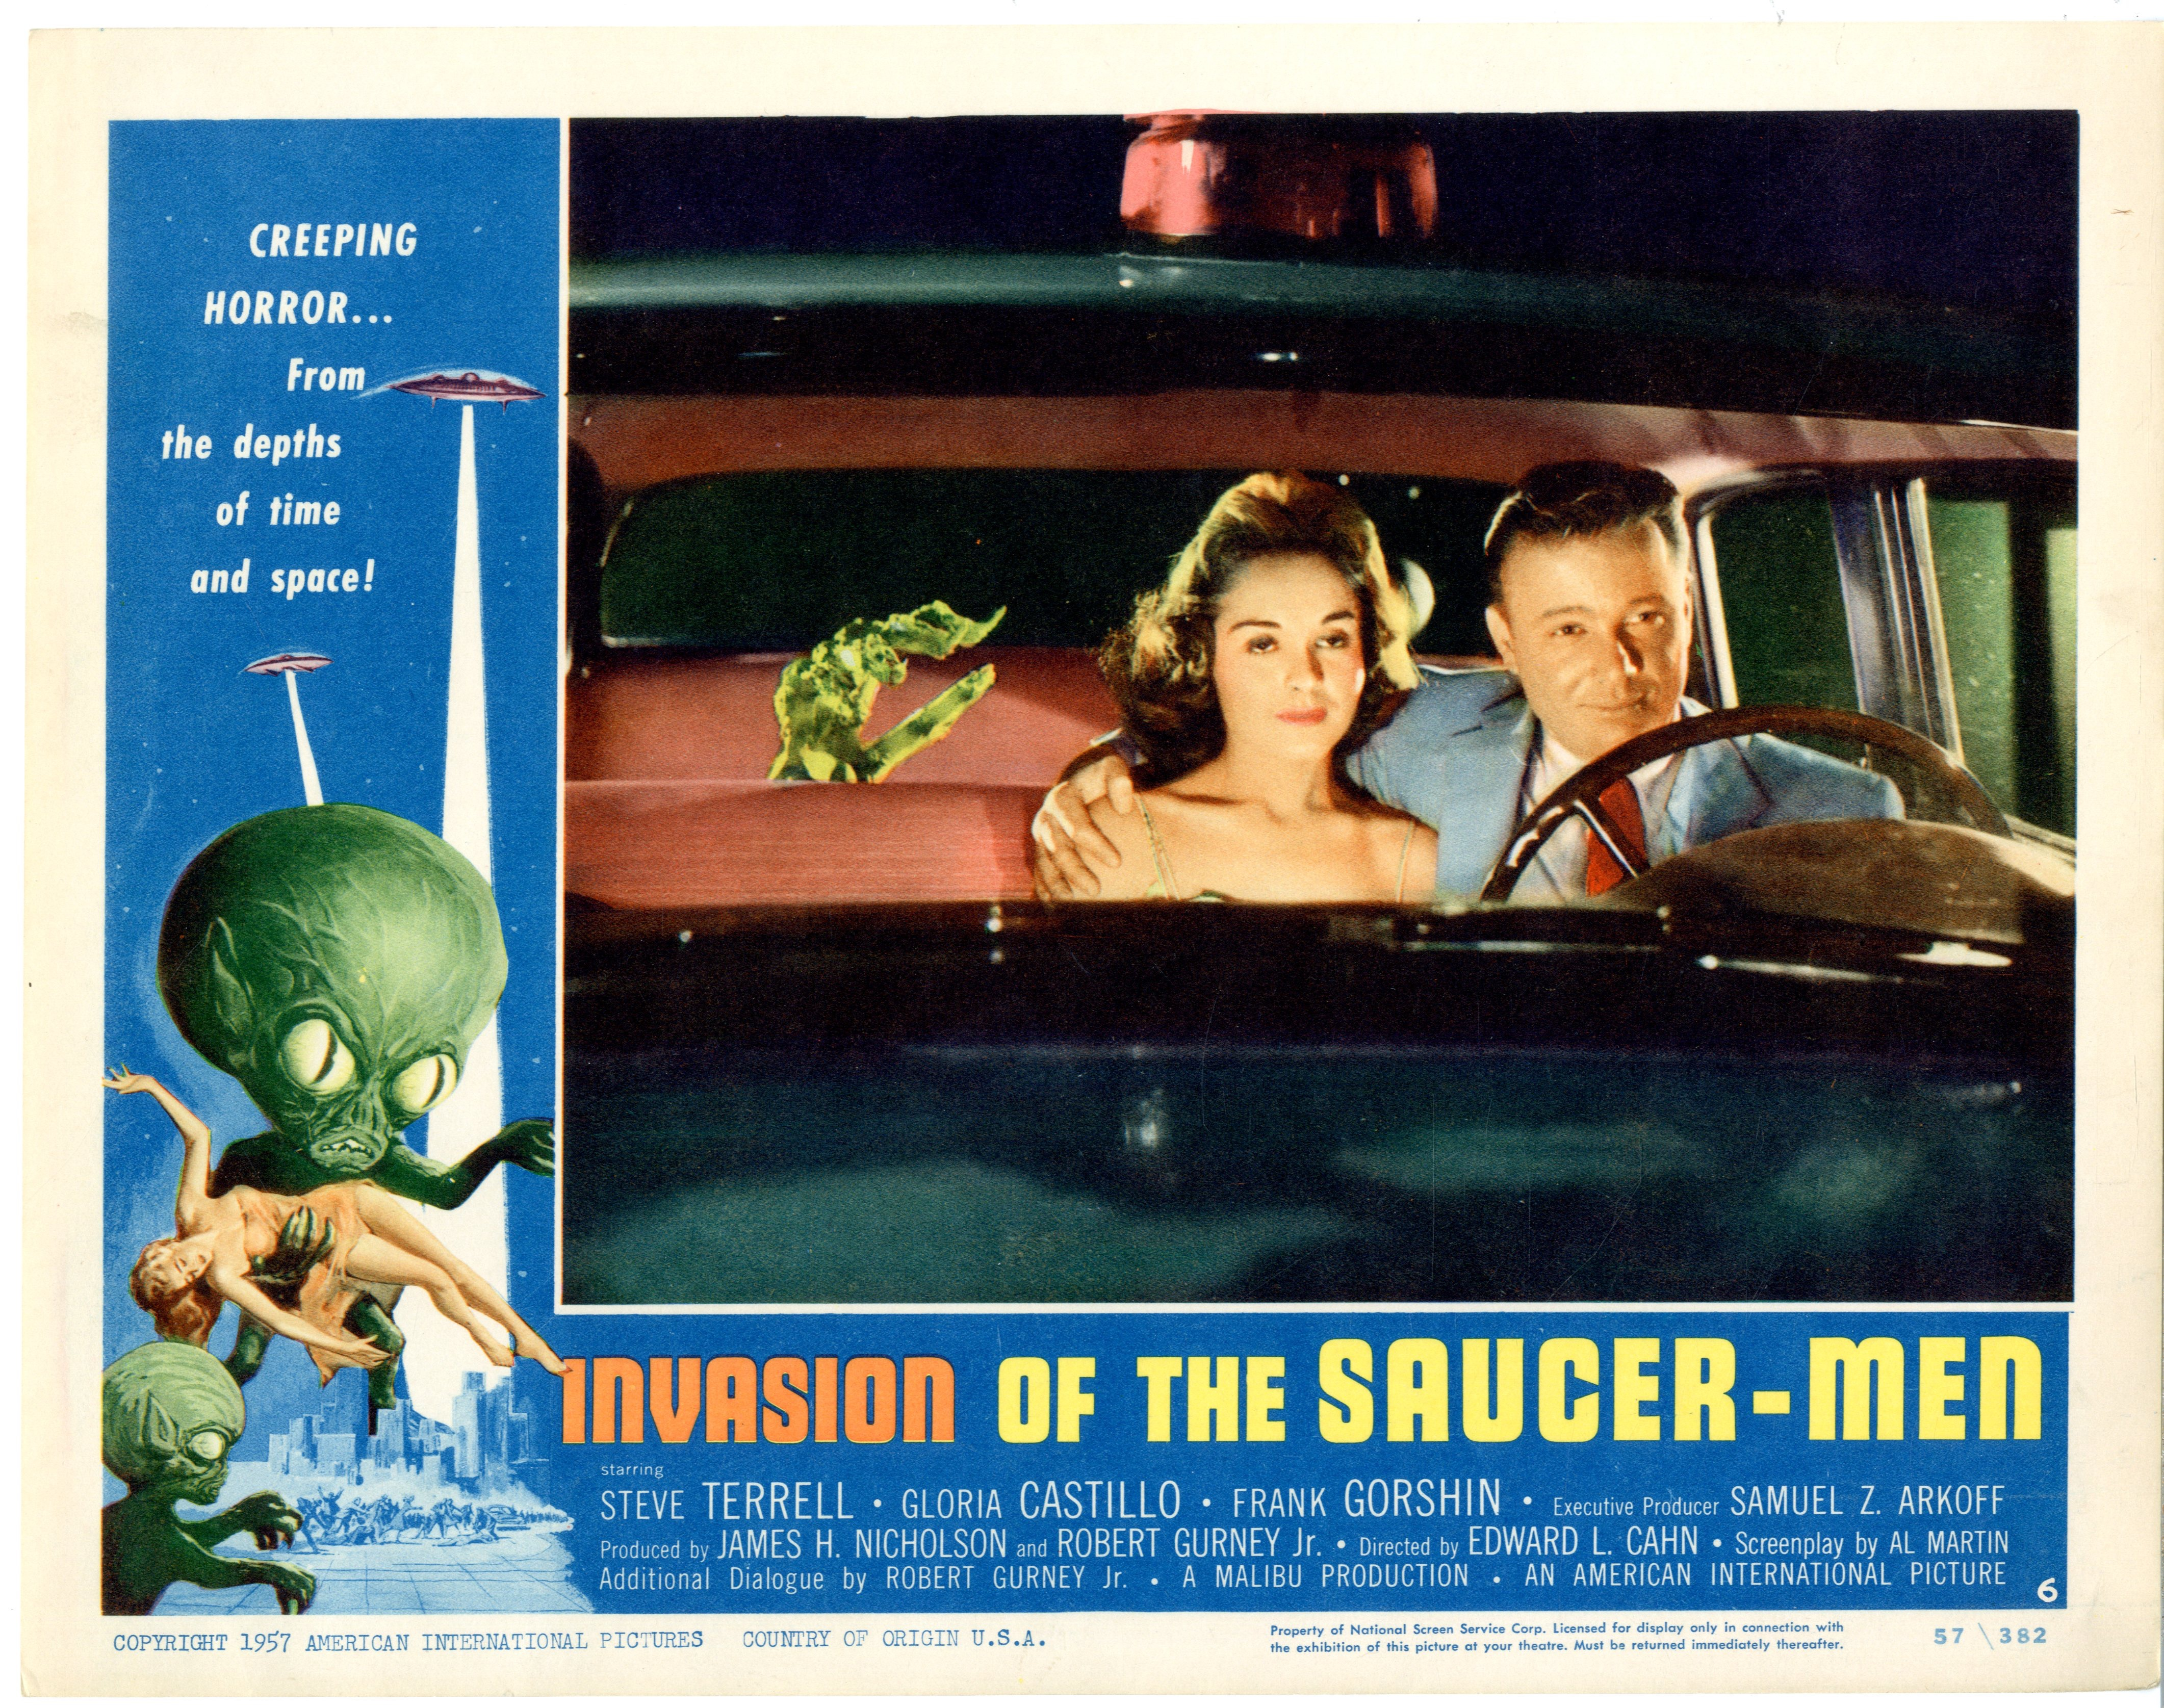 Invasion Of The Saucer-men 1957 - 22008